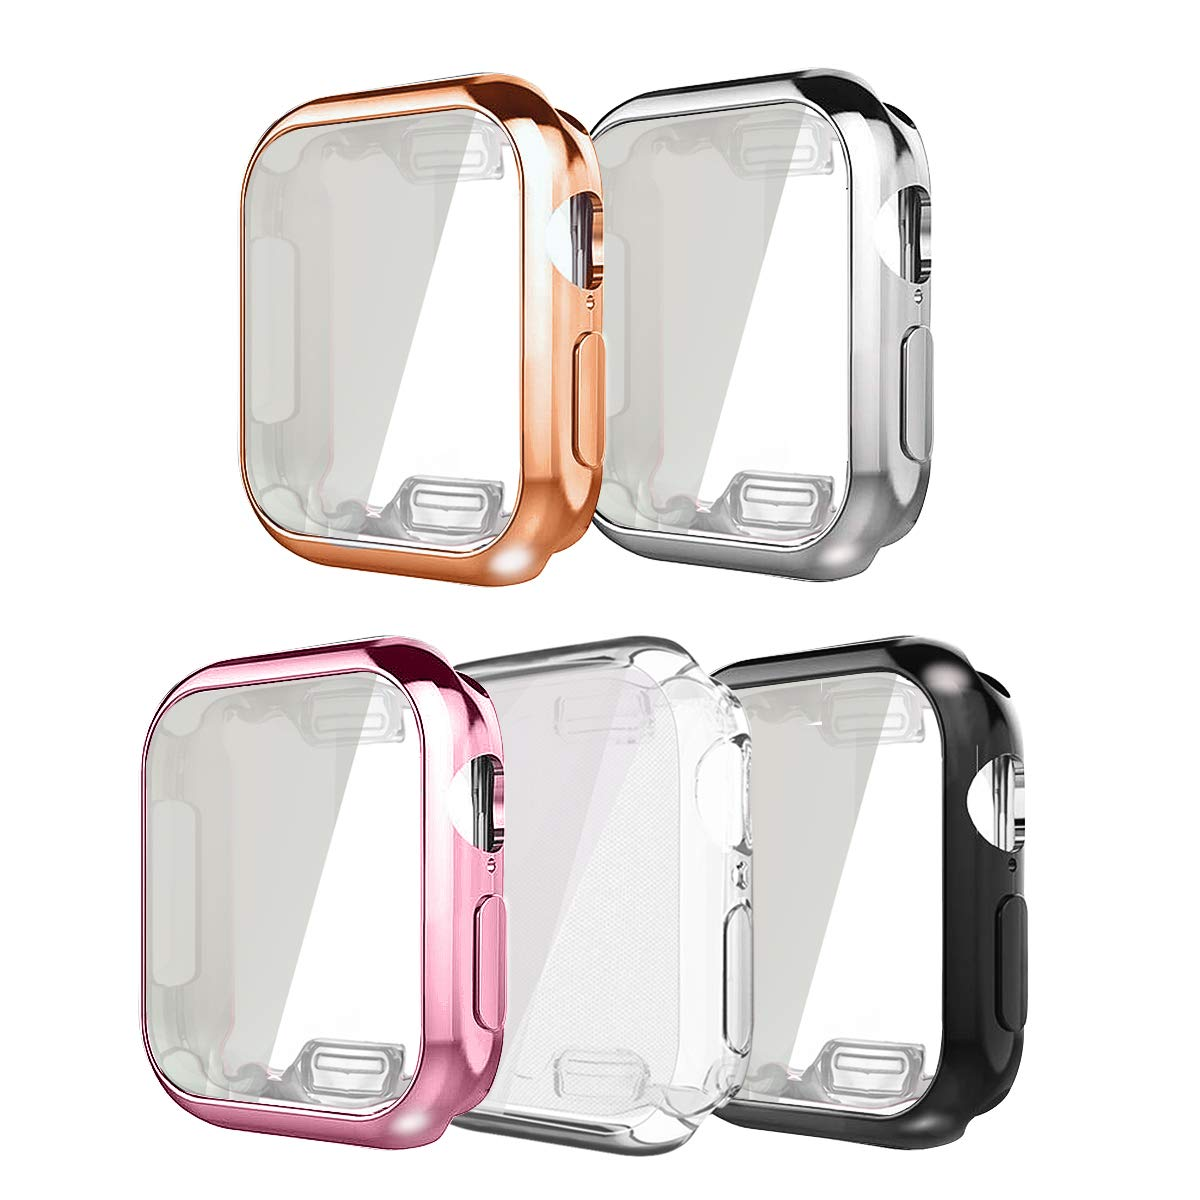 ISENXI Compatible for Apple Watch 4 Case 40mm, 5 Pack iwatch Screen Protector TPU All-Around Protective Case hd Clear Ultra-Thin Cover Compatible with New Apple Watch Series 4 (5Pack, 40MM) by ISENXI